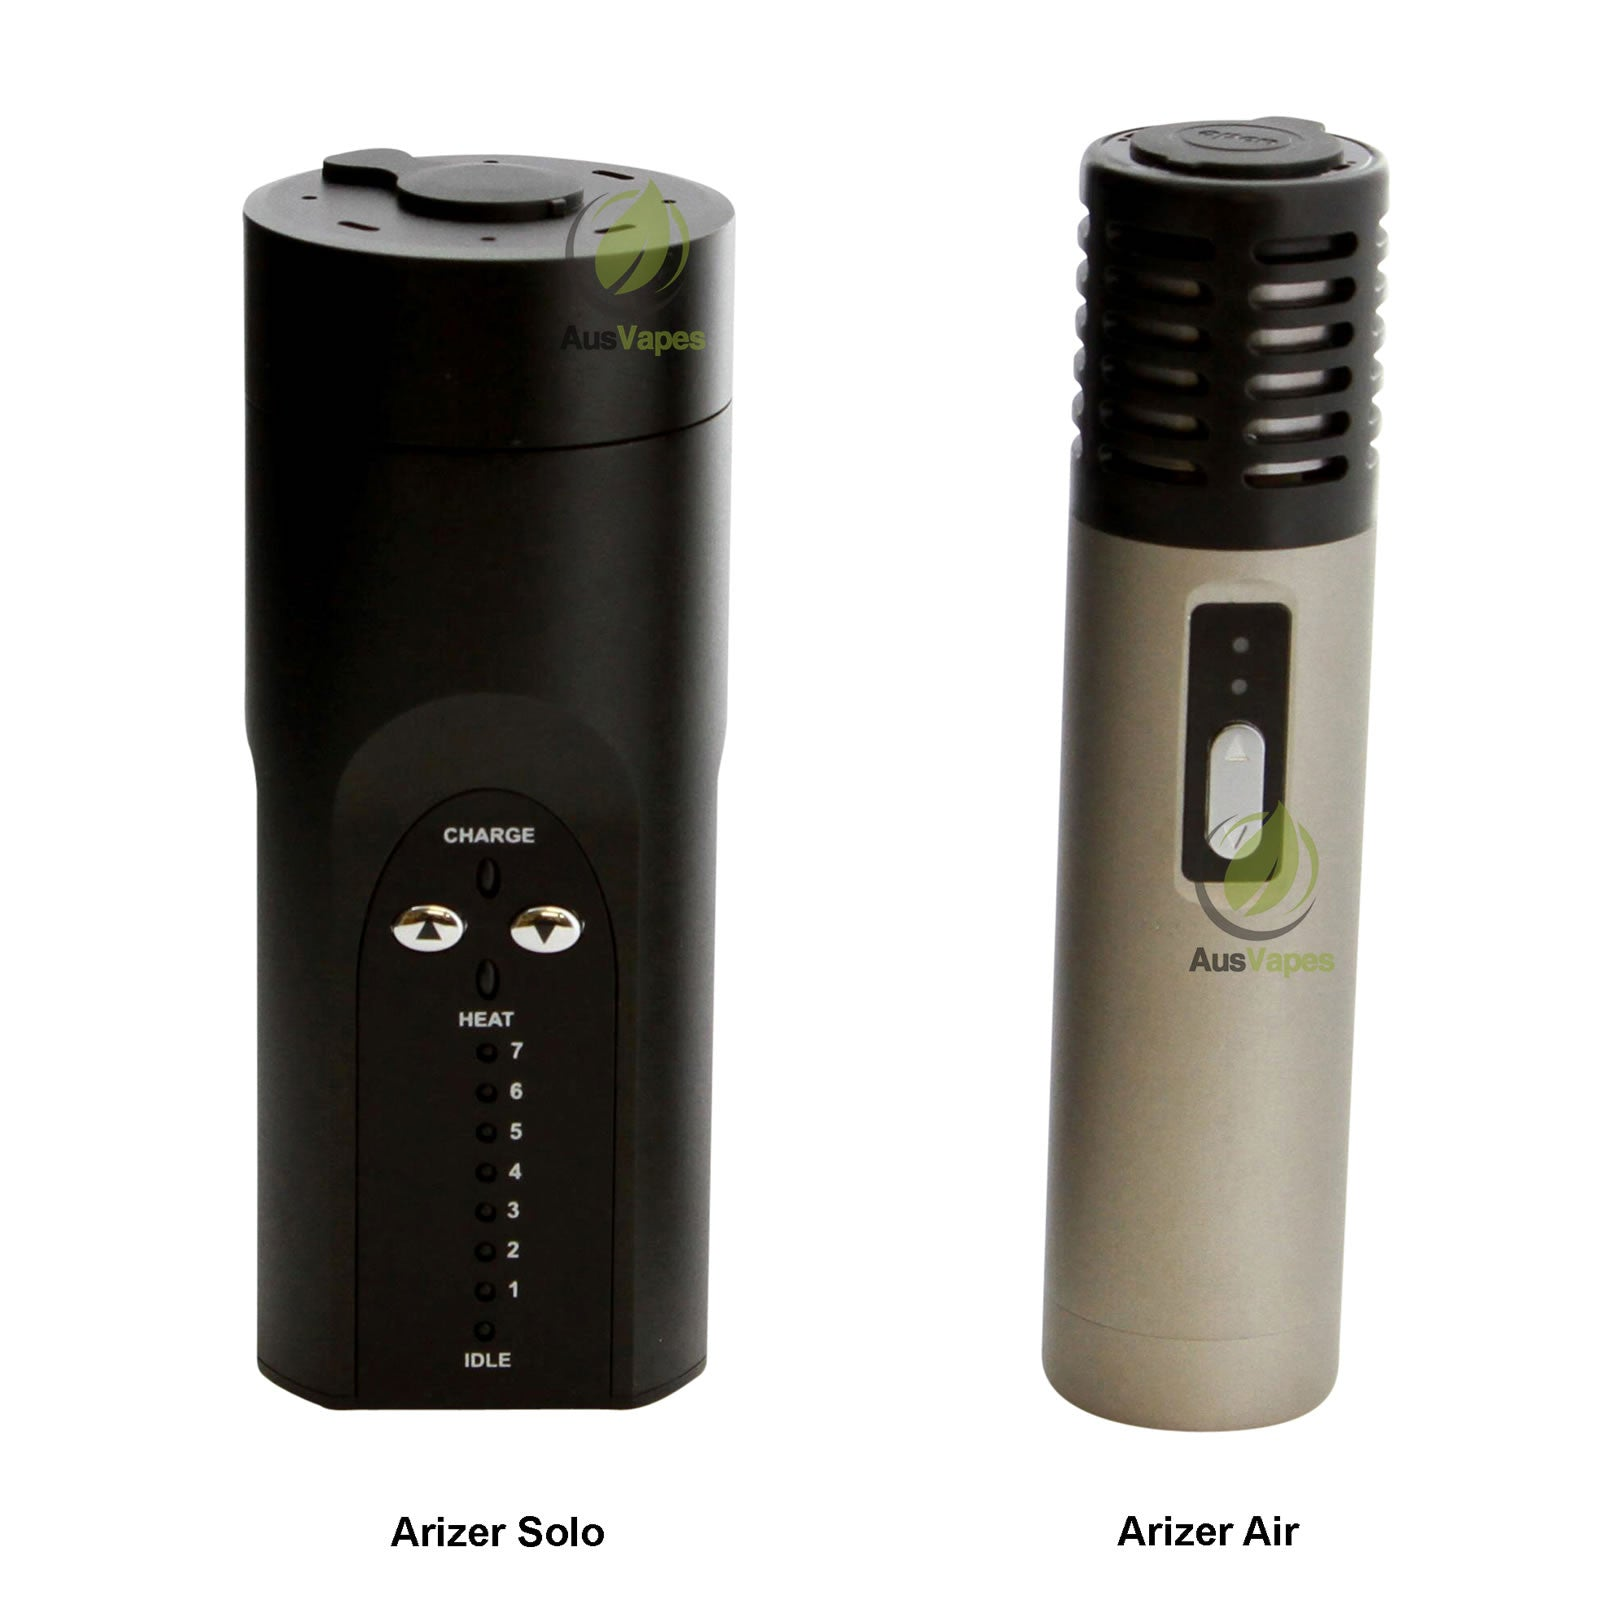 arizer air and arizer solo side by side